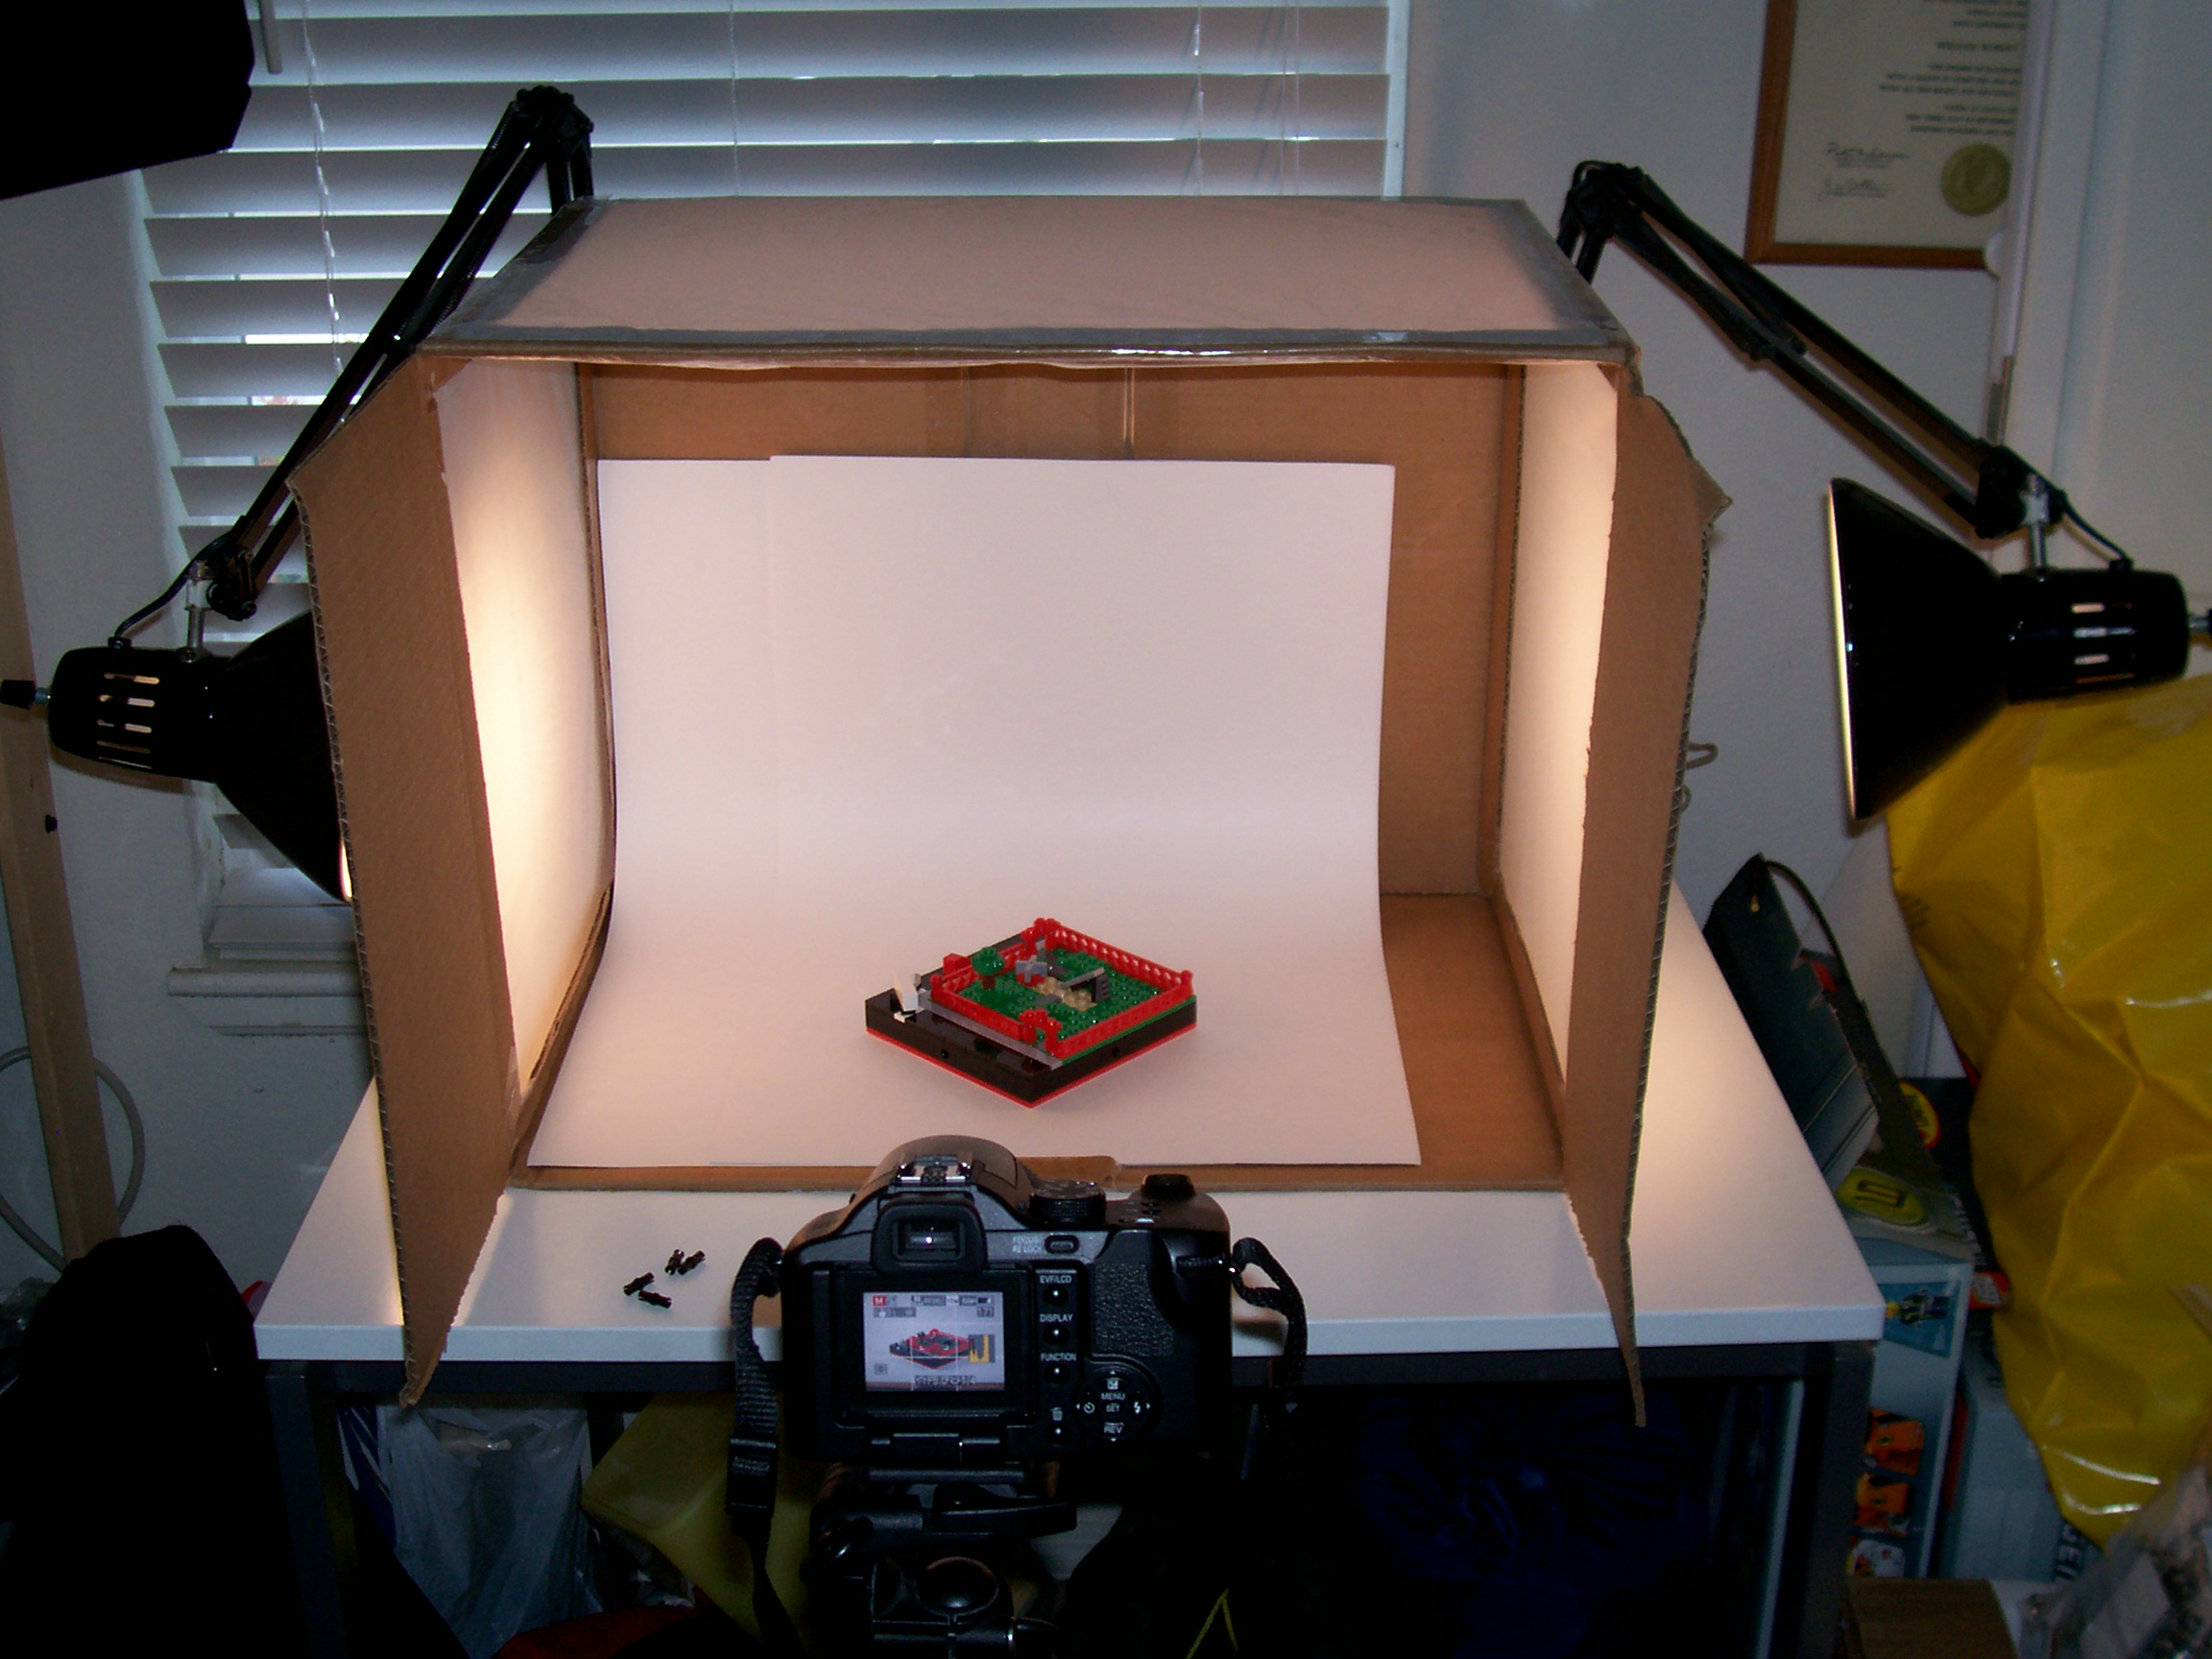 Marvelous File:Homemade Lightbox Built For Photographing LEGO